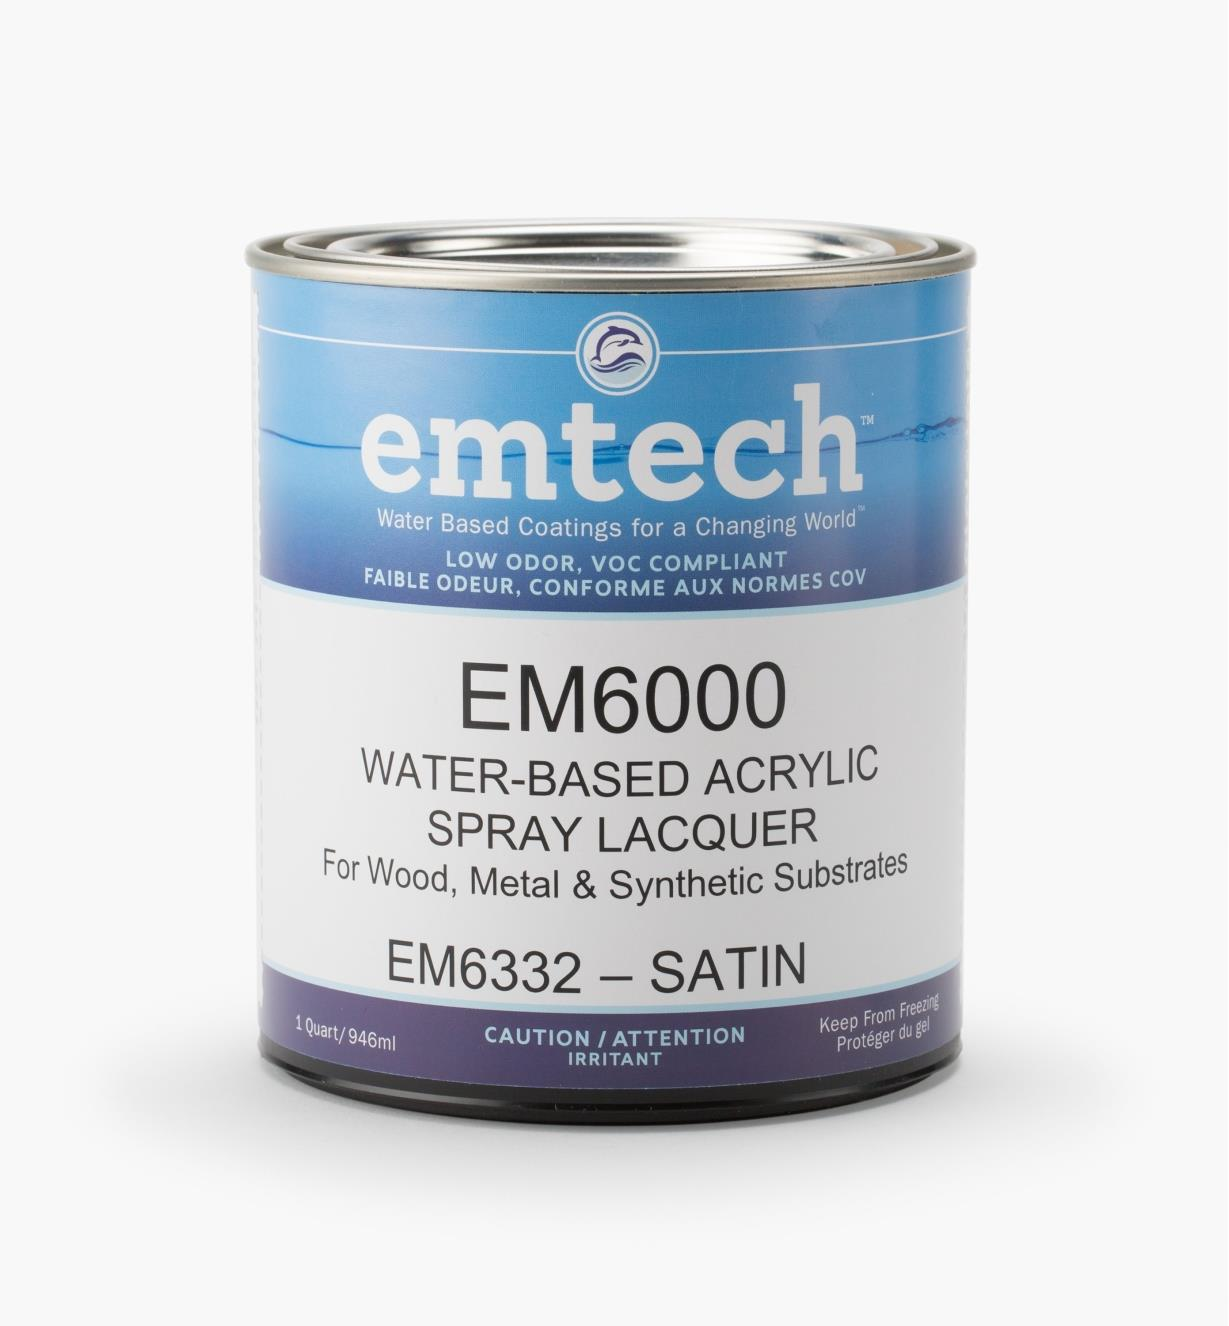 56Z1916 - Emtech Water-Based Satin Lacquer, Quart